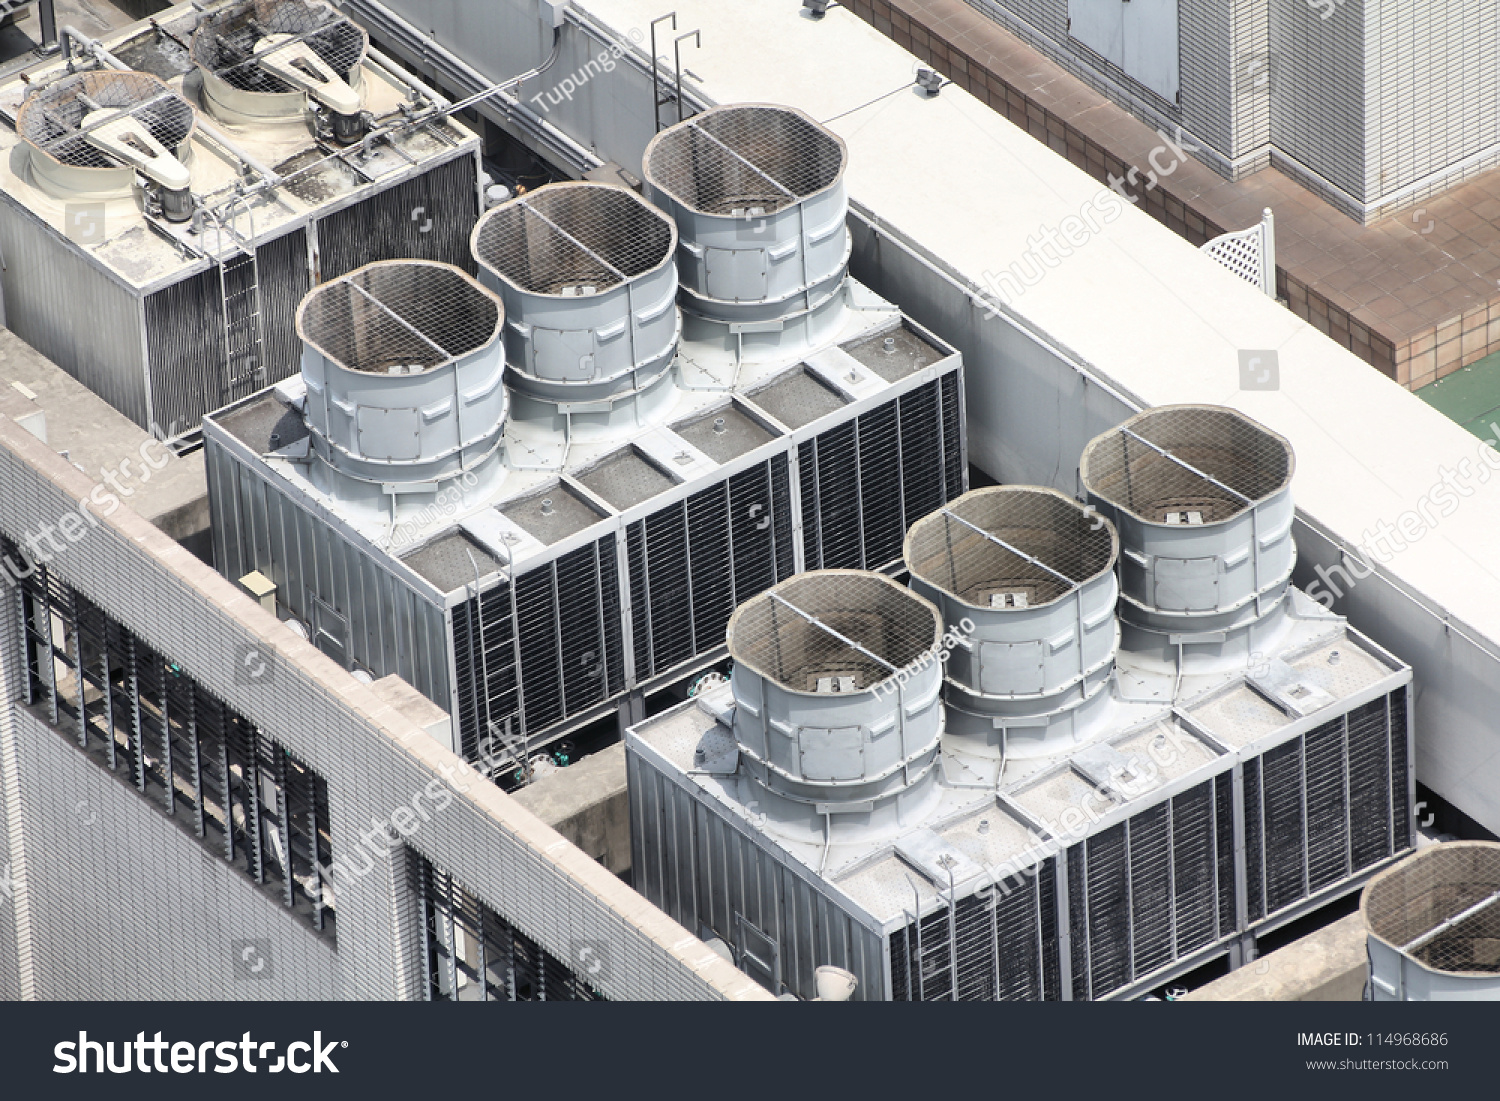 Industrial Roof Vents : Exhaust vents industrial air conditioning ventilation